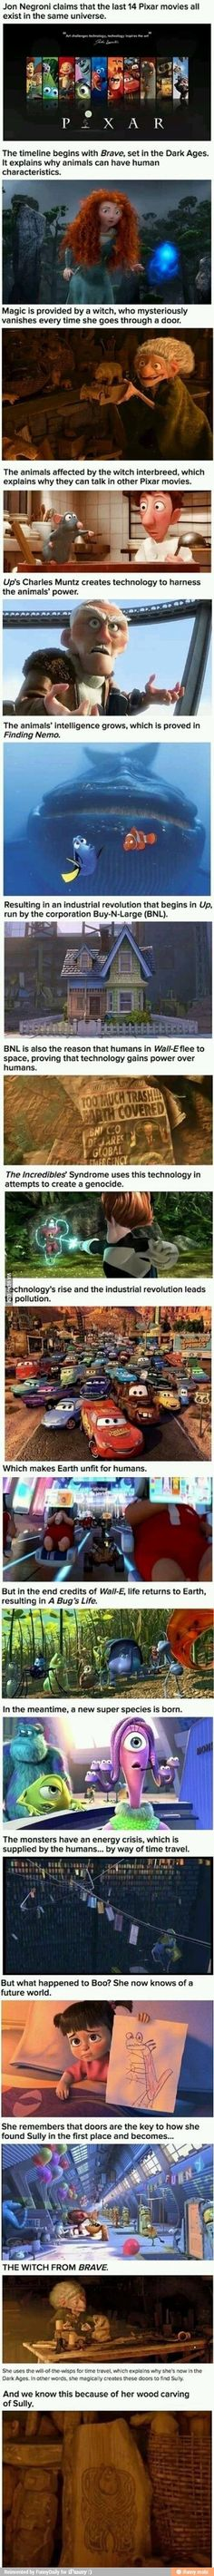 Pixar movies explained. Mind blown! Read the whole article it's so interesting